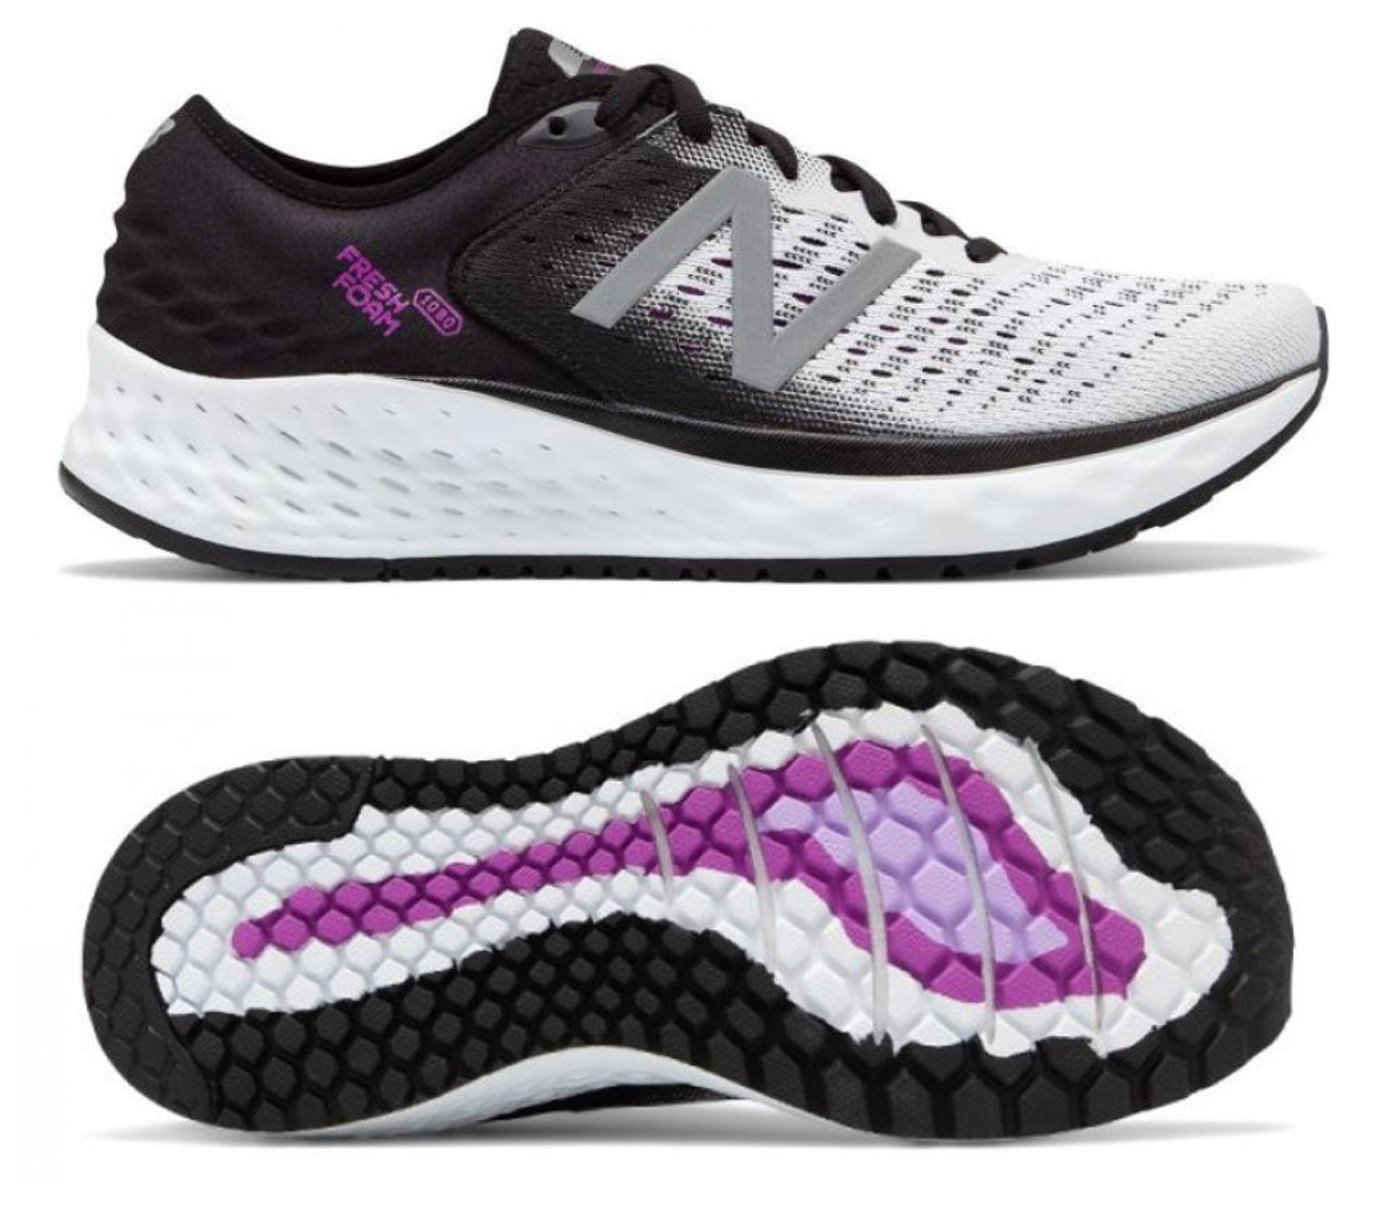 NEW BALANCE Fresh Foam 1080 v9 - Damen